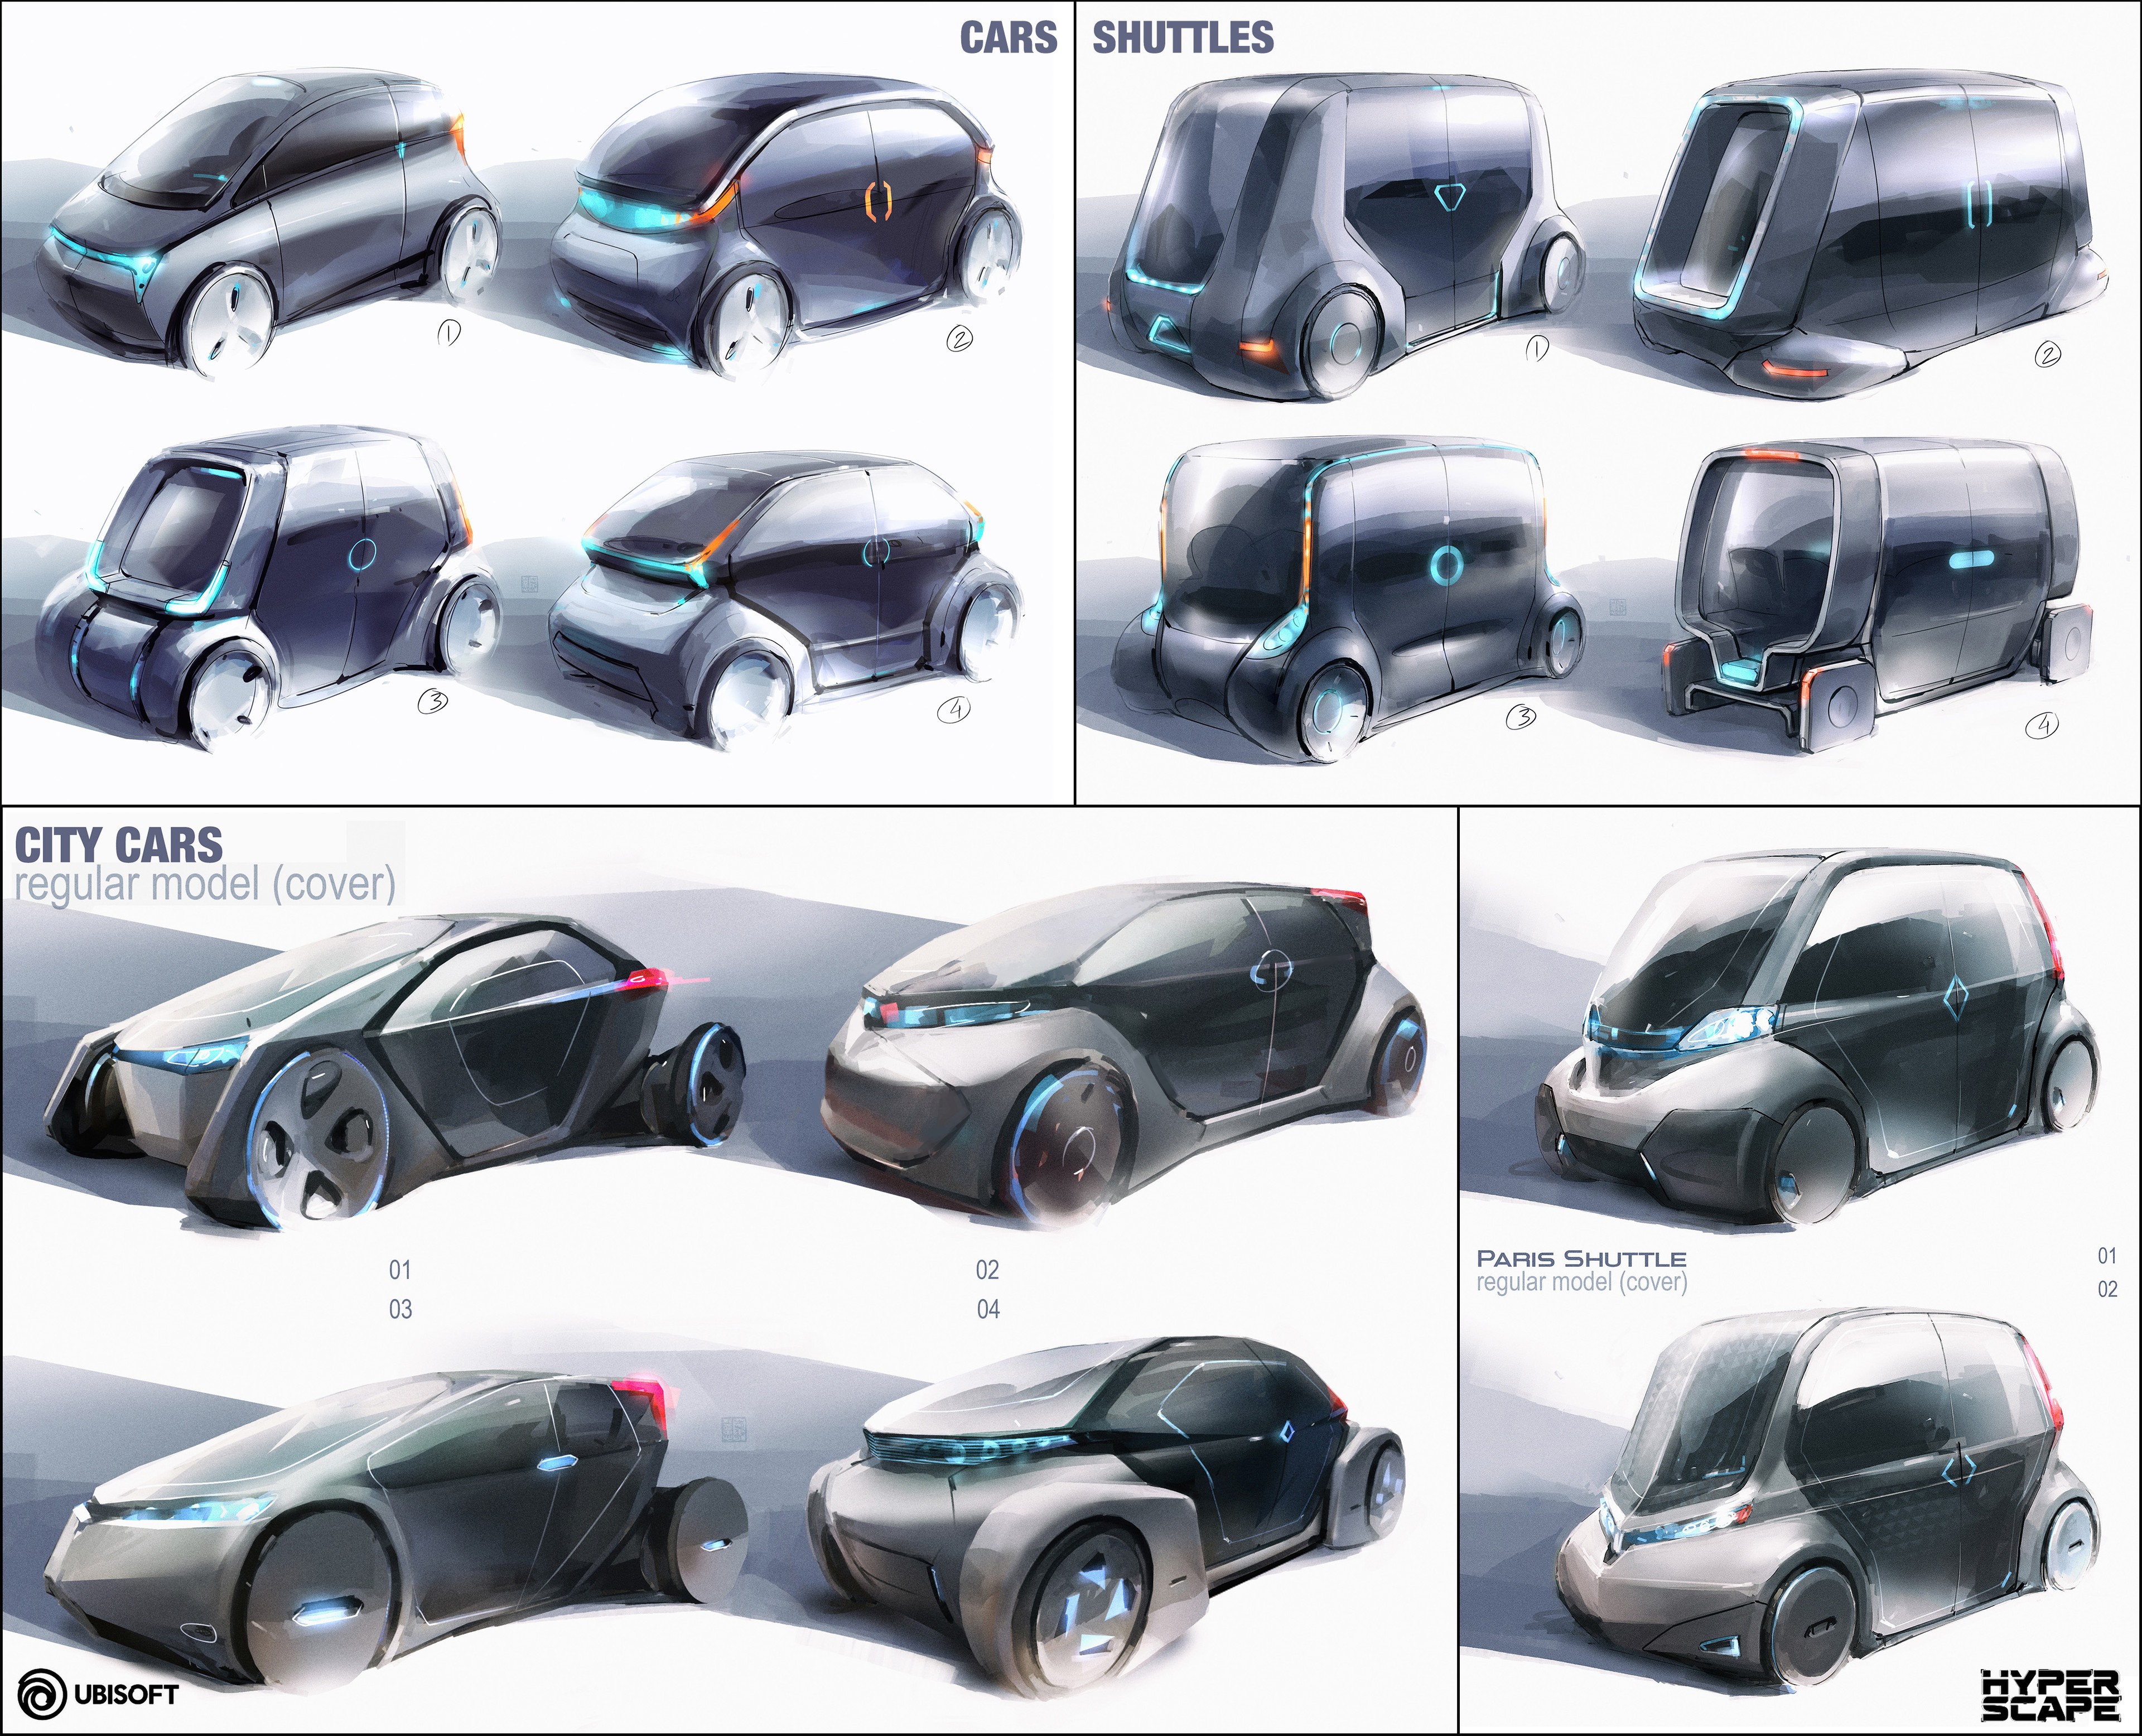 I didn't have much time to re-design the cars (which are basically fancy covers). They needed to have a very contemporary/sci-fi generic look for repetition and budget reasons...